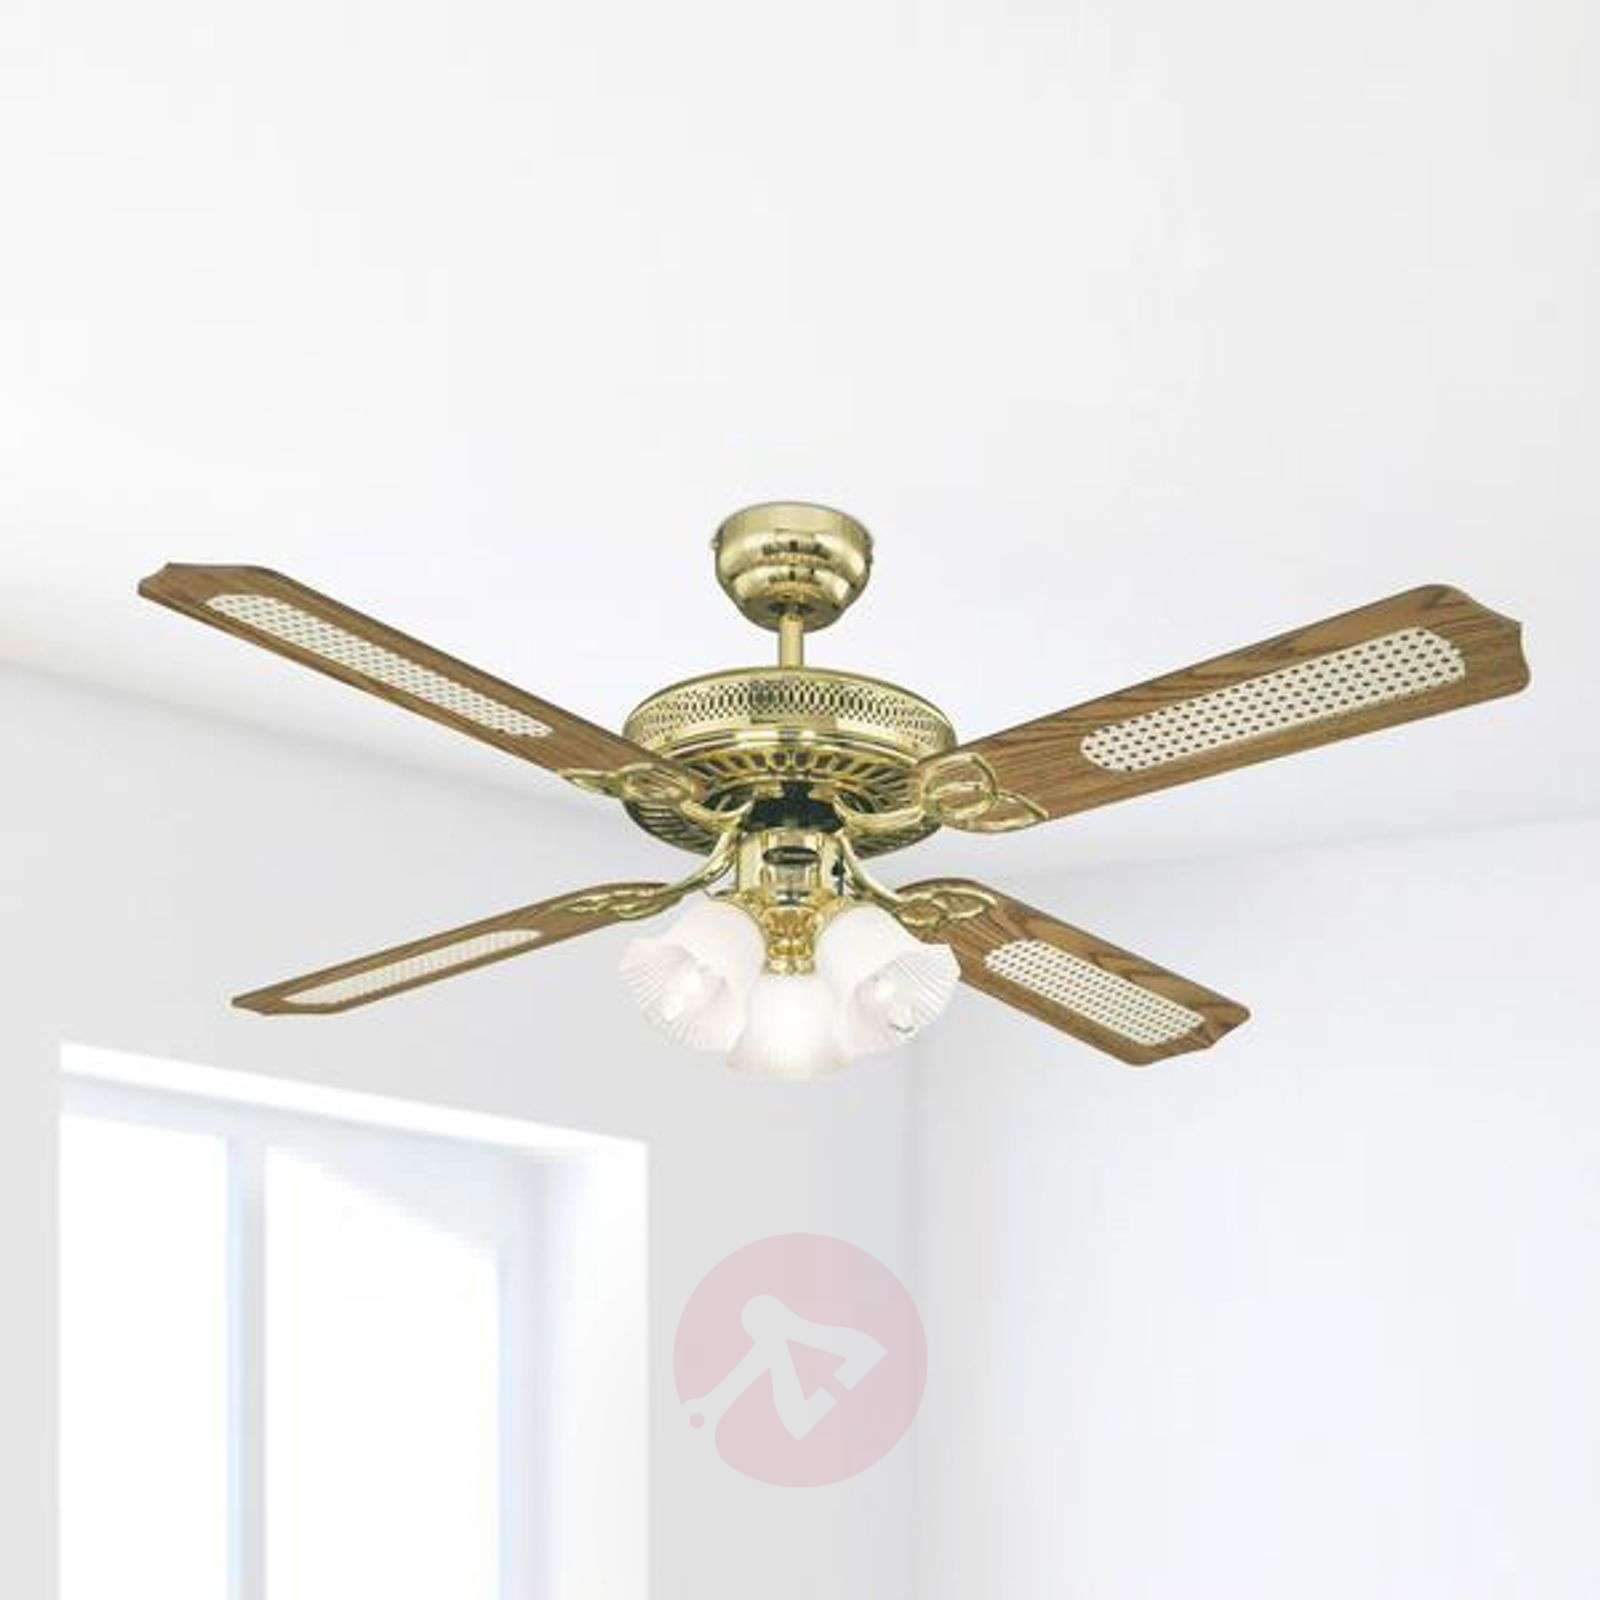 Monarch Trio ceiling fan with changeable blades-9602042-01